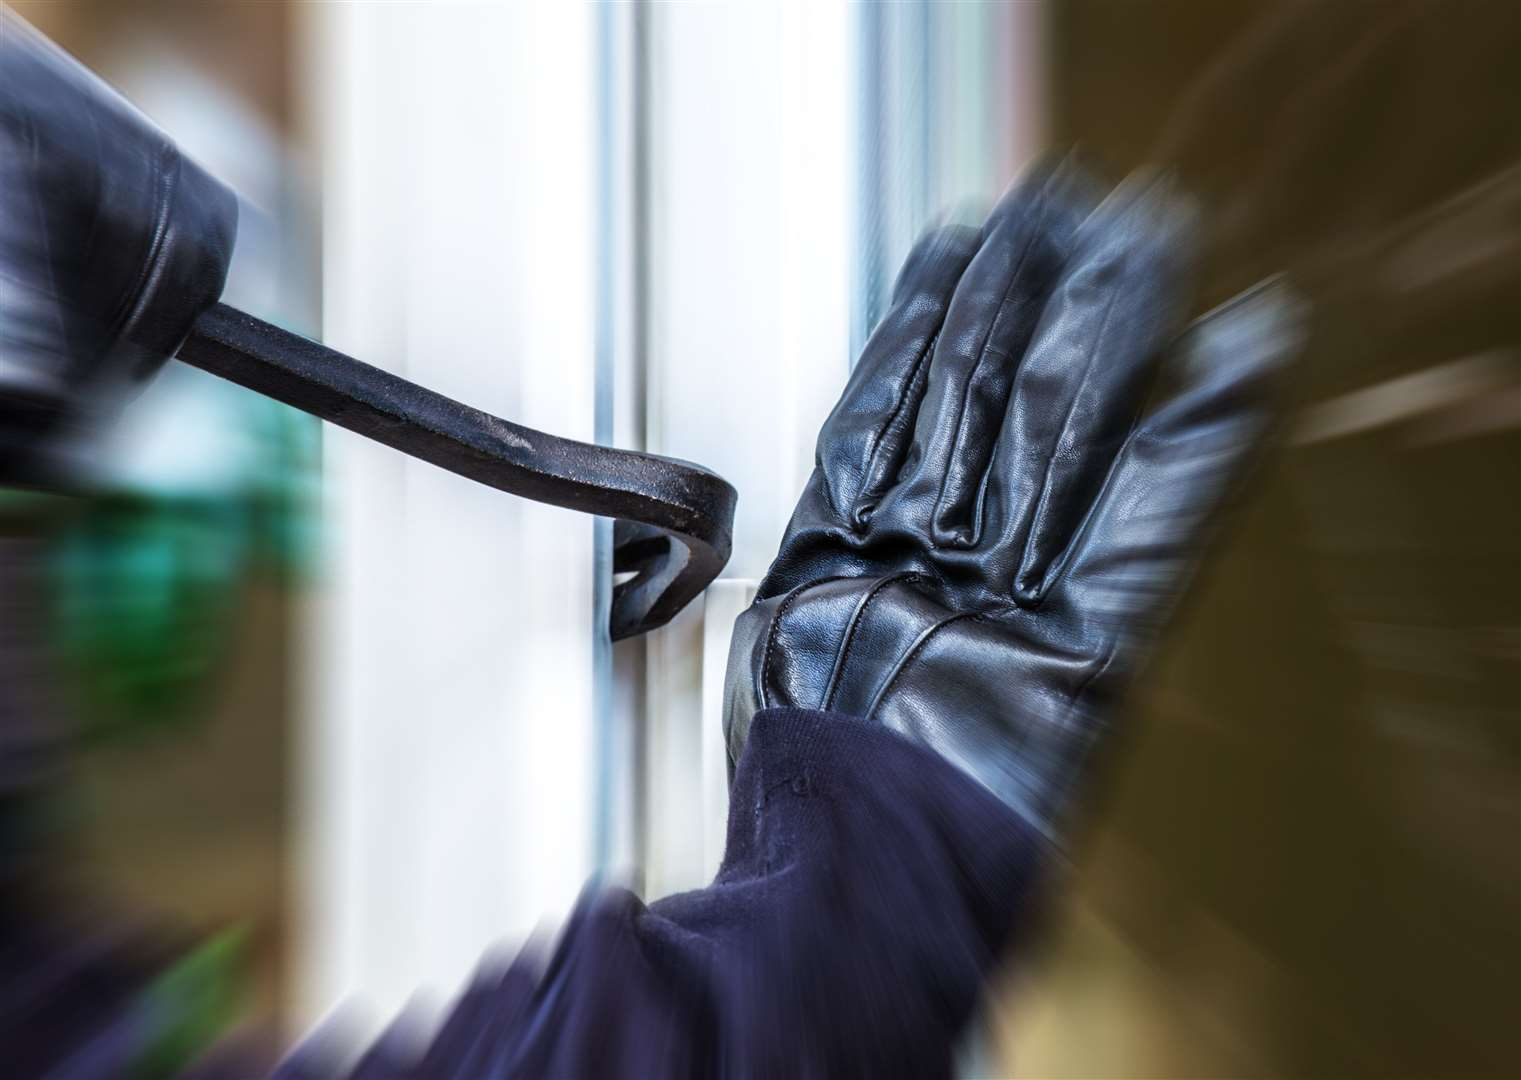 Two suspected burglars will appear in court. Stock image